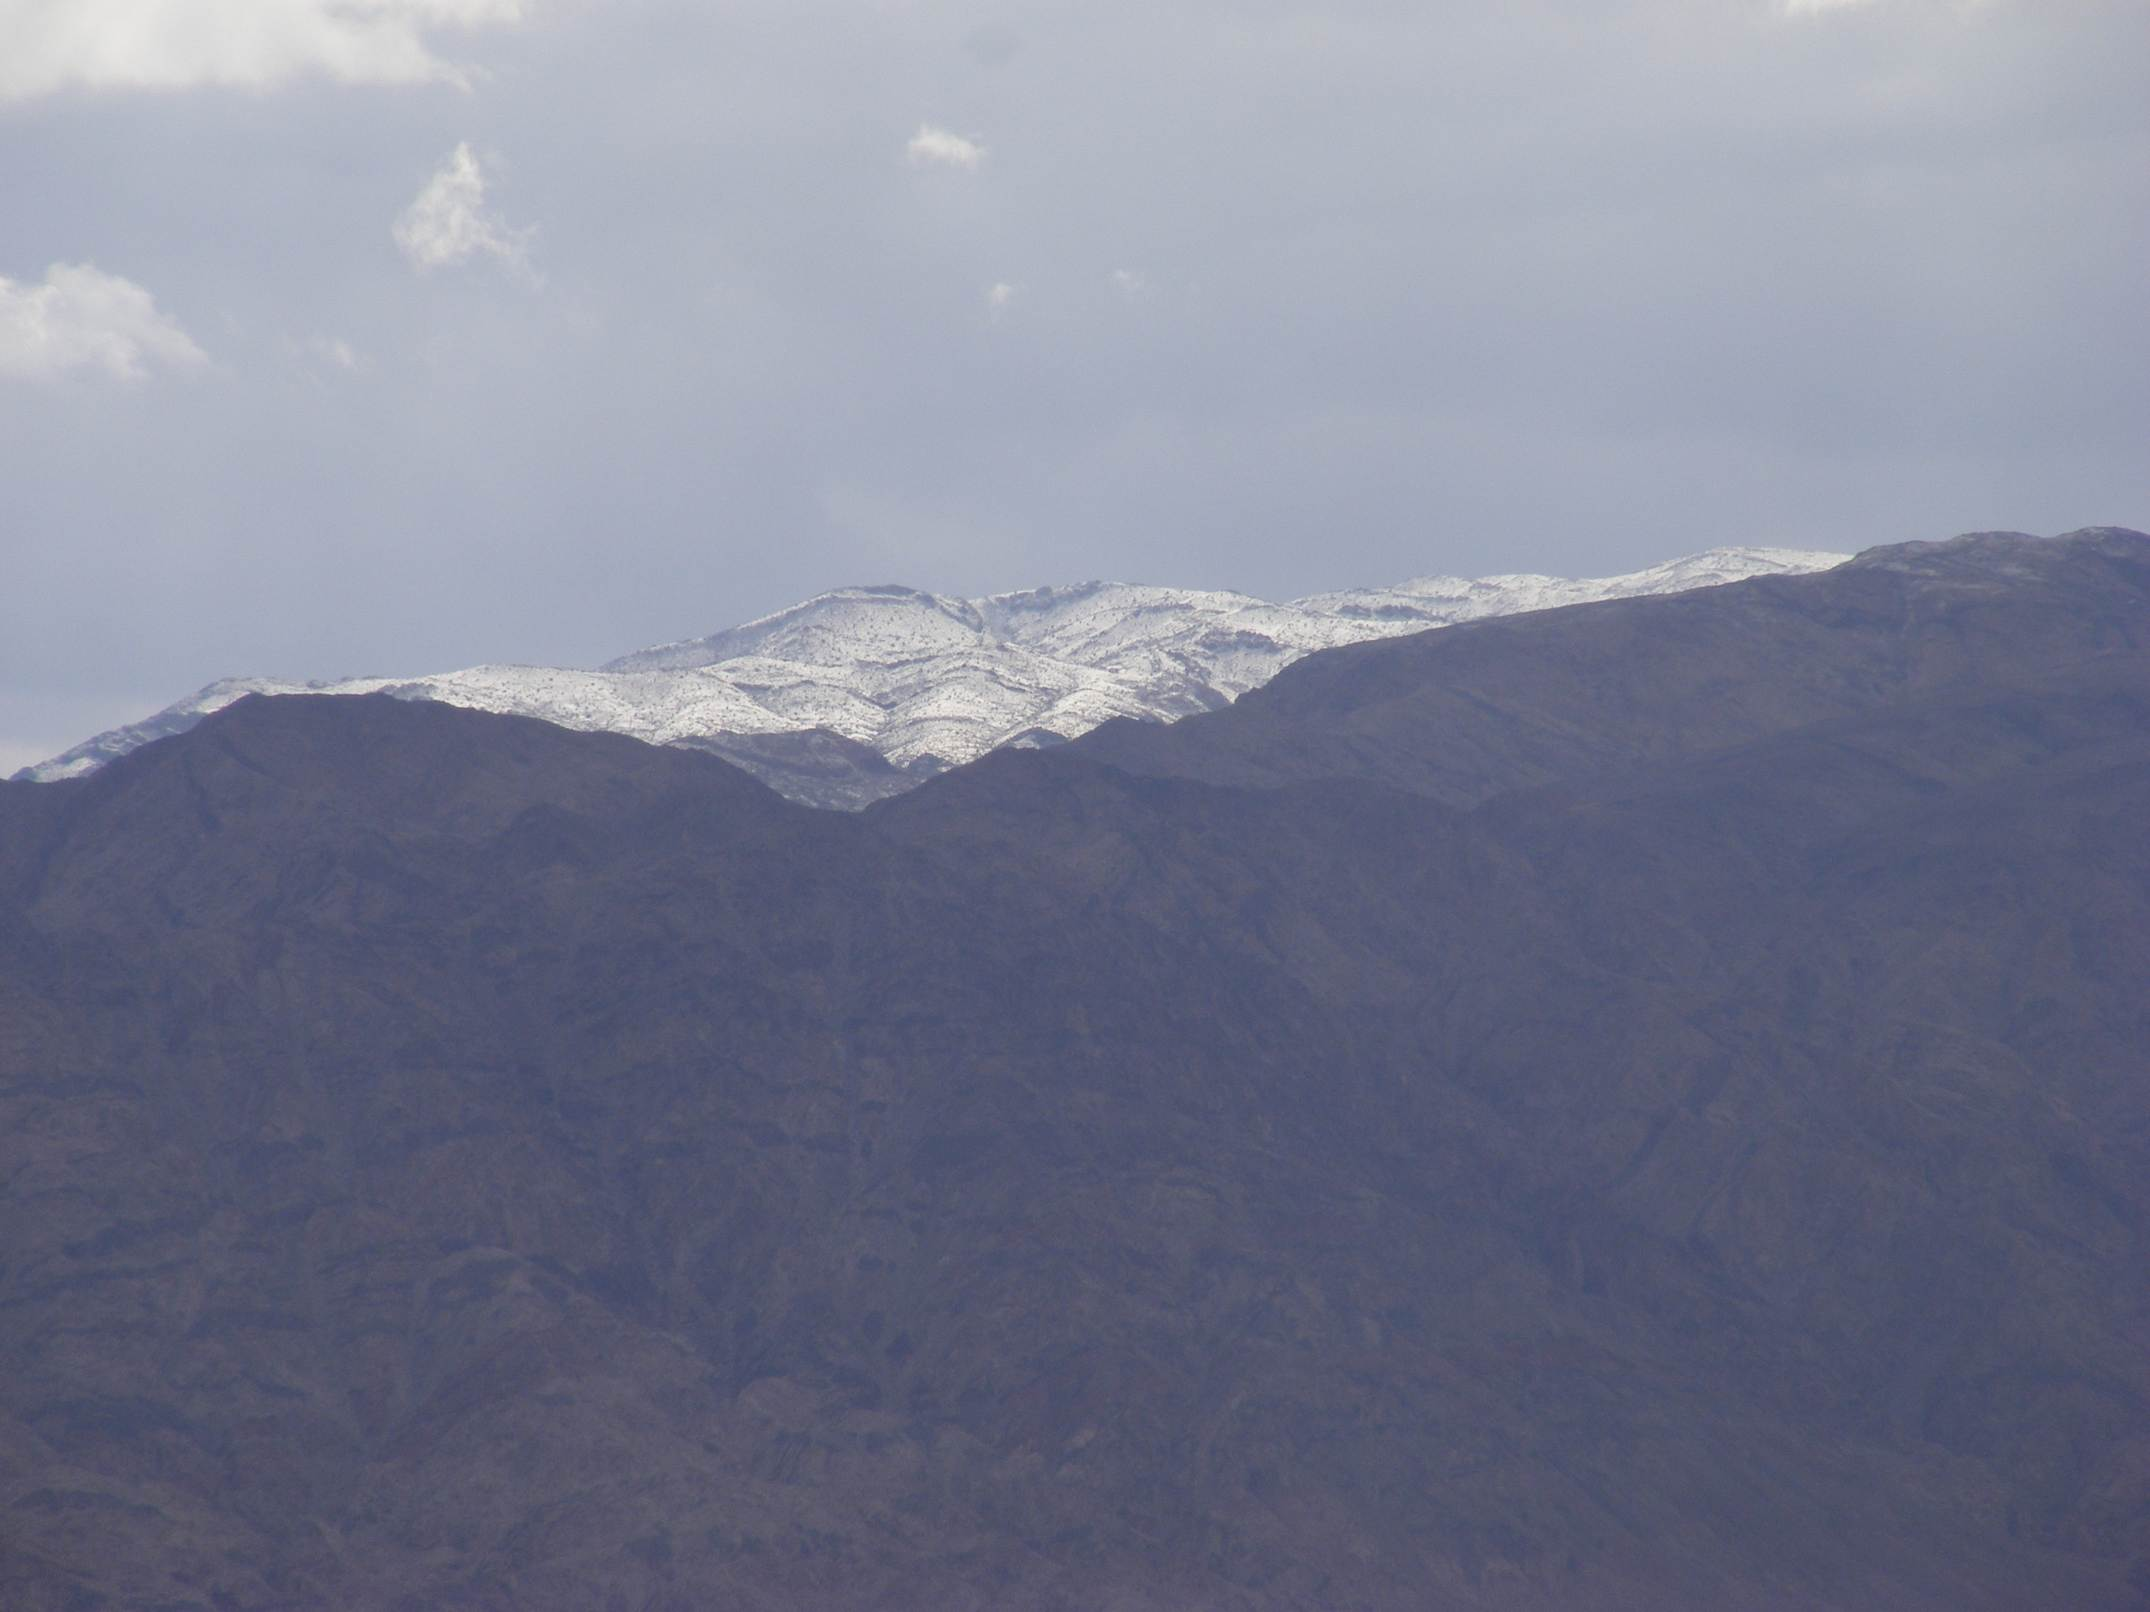 Snowy peak up yonder, Edom Mountains, Jordan, 2013